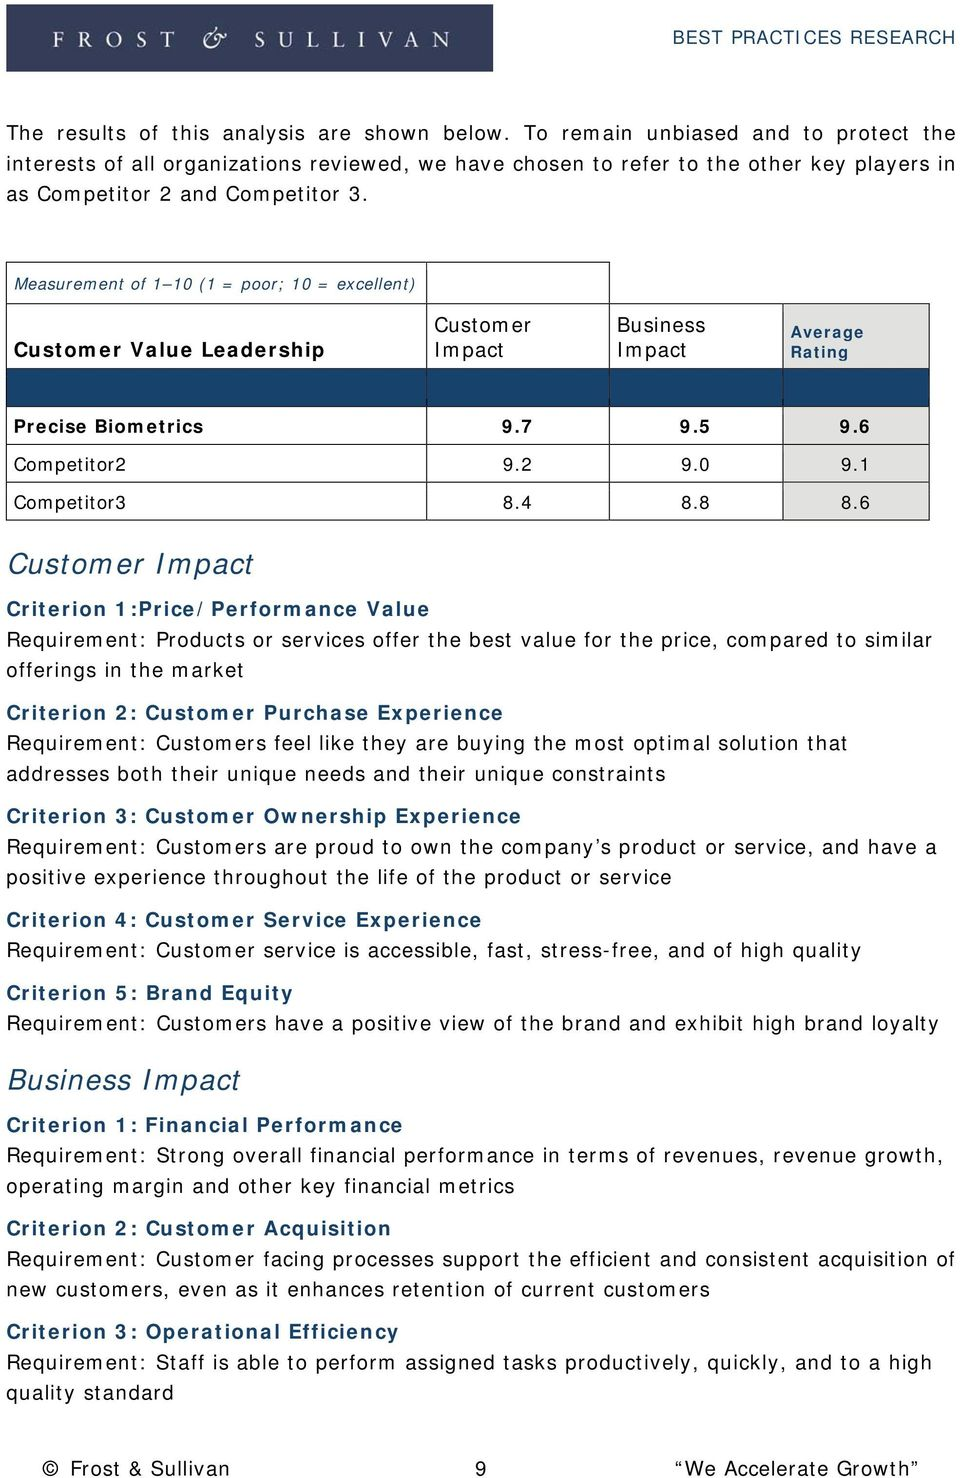 Measurement of 1 10 (1 = poor; 10 = excellent) Customer Value Leadership Customer Impact Business Impact Average Rating Precise Biometrics 9.7 9.5 9.6 Competitor2 9.2 9.0 9.1 Competitor3 8.4 8.8 8.